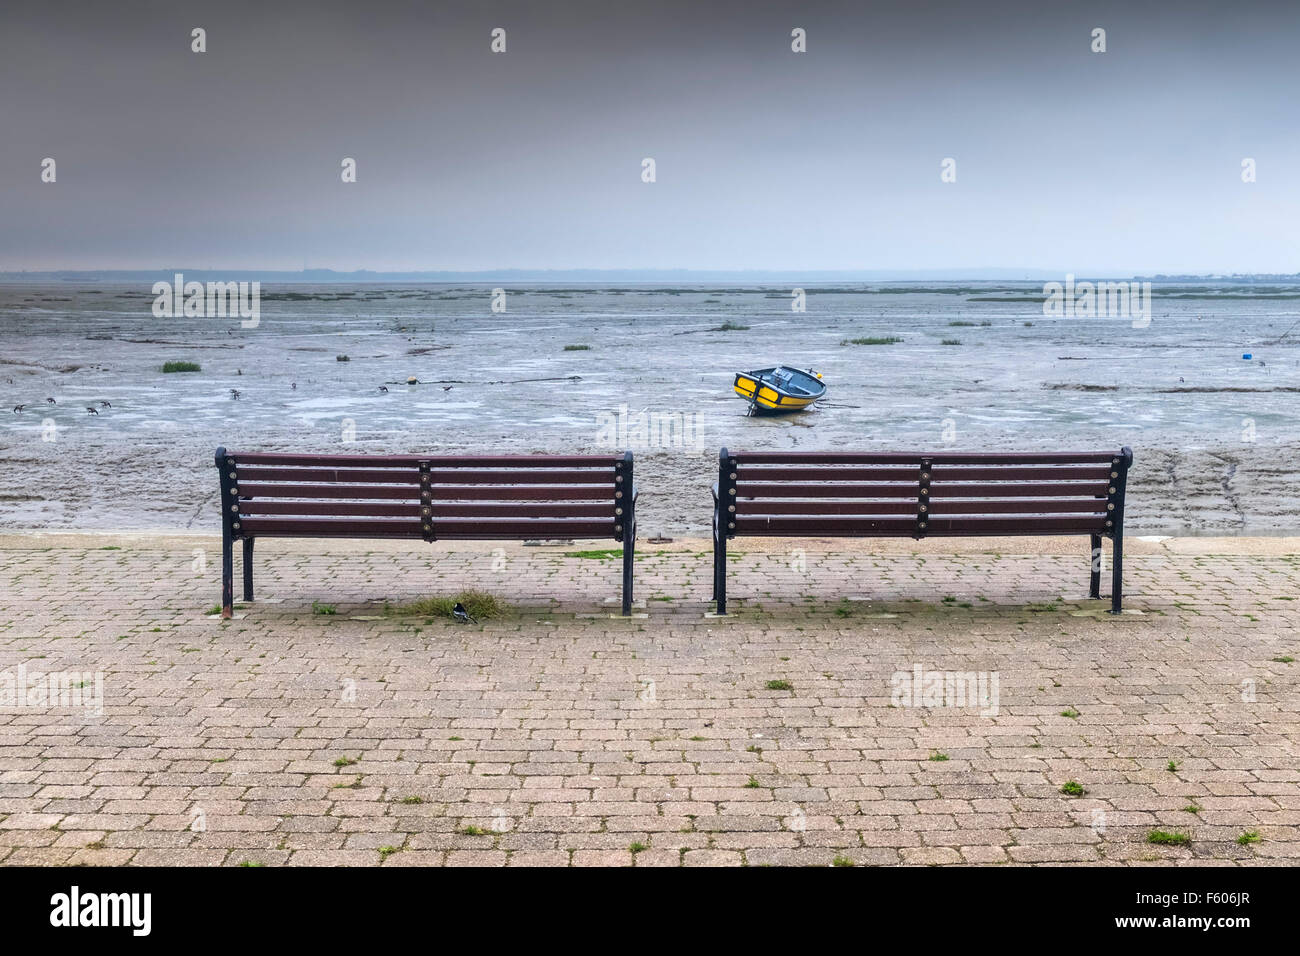 Two benches on a wharf overlooking the Thames Estuary in Essex. - Stock Image